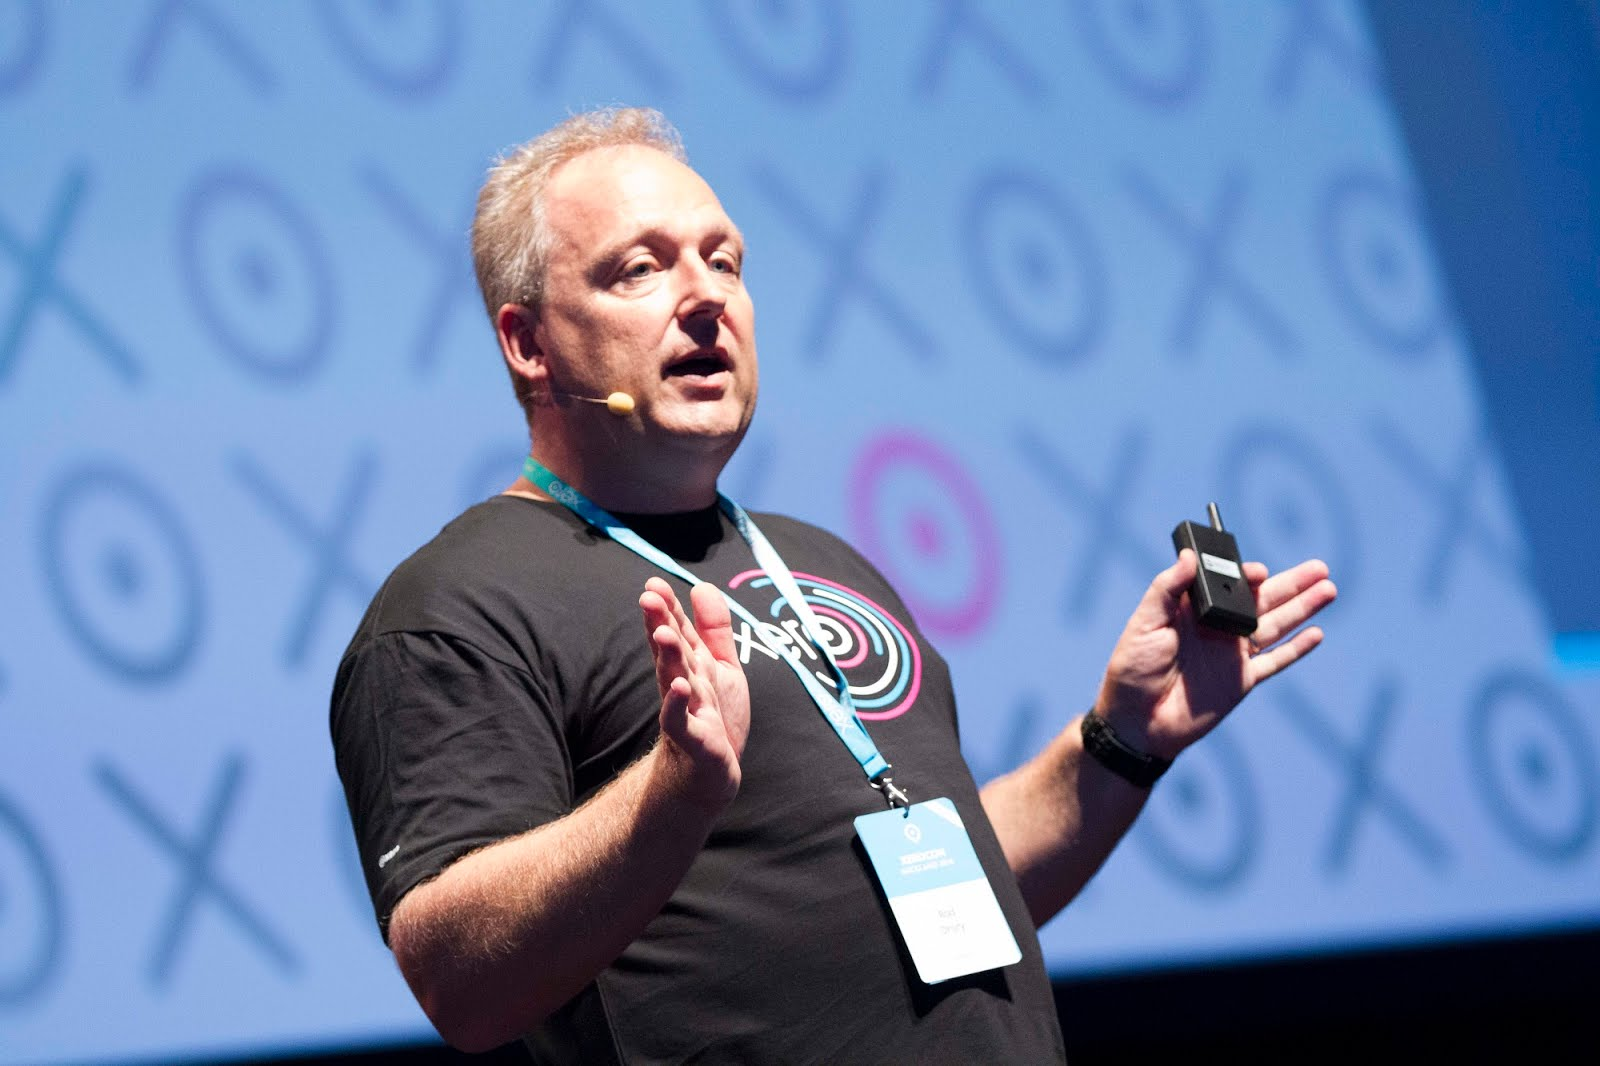 Rod Drury at Xerocon New Zealand 2014